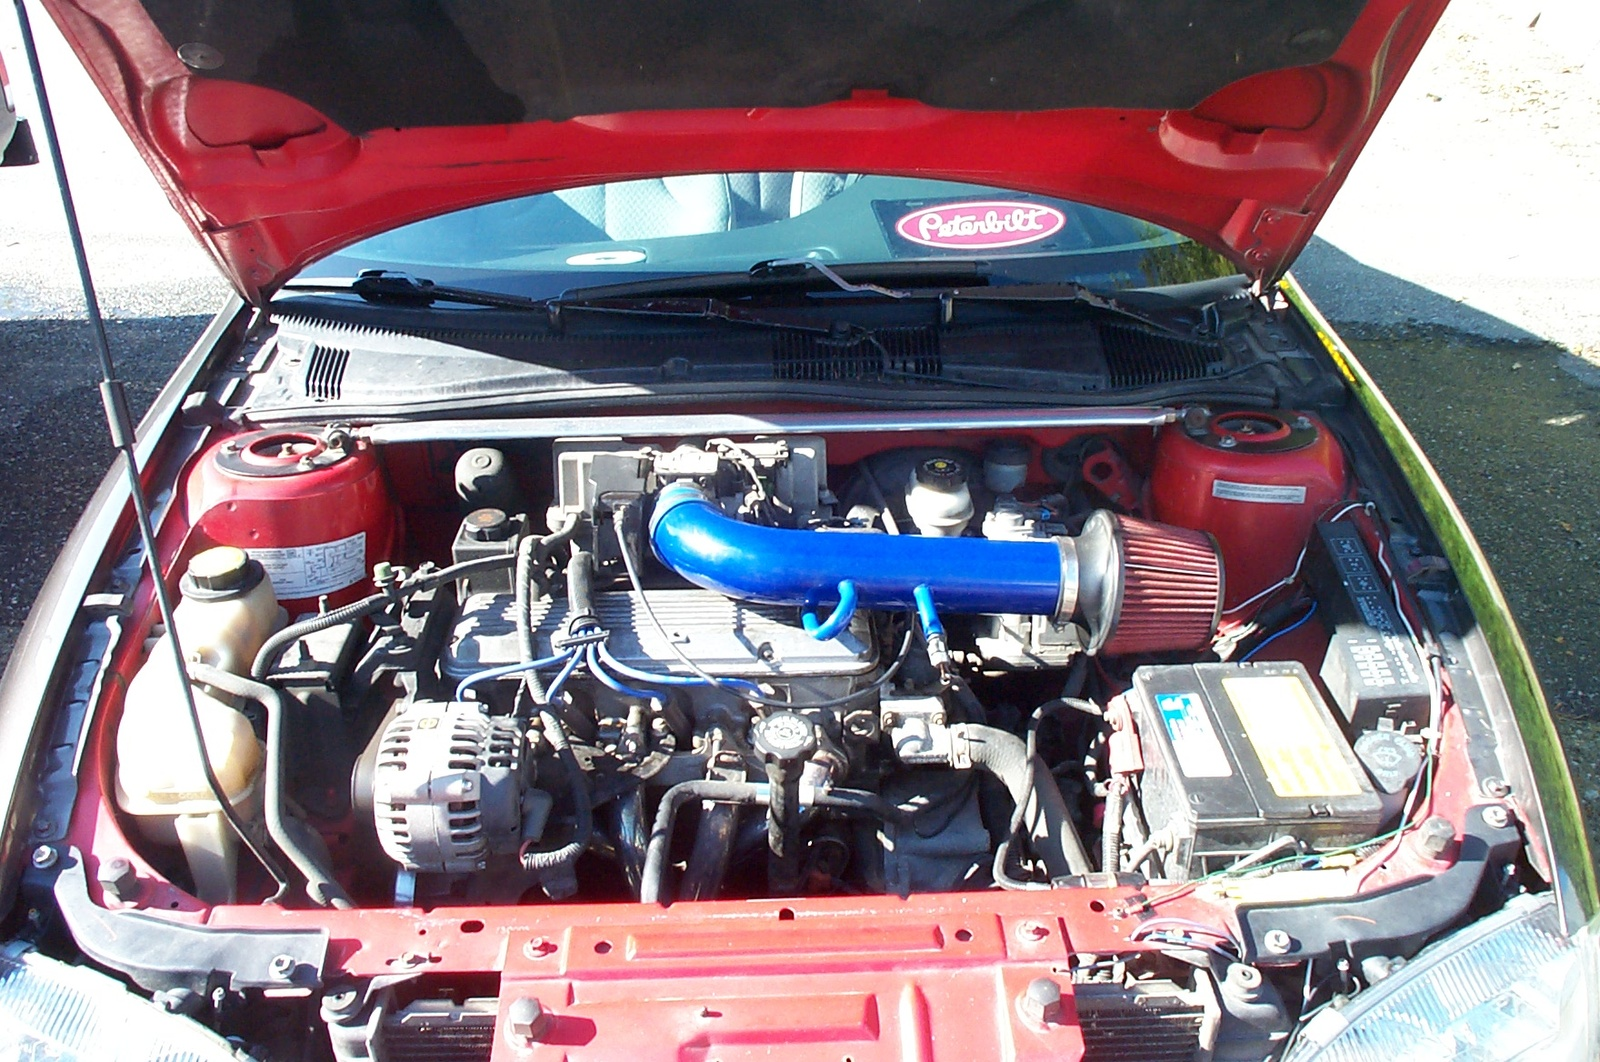 Cavalier chevy cavalier 2004 reviews : Cavalier » 2004 Chevy Cavalier Reviews - Old Chevy Photos ...